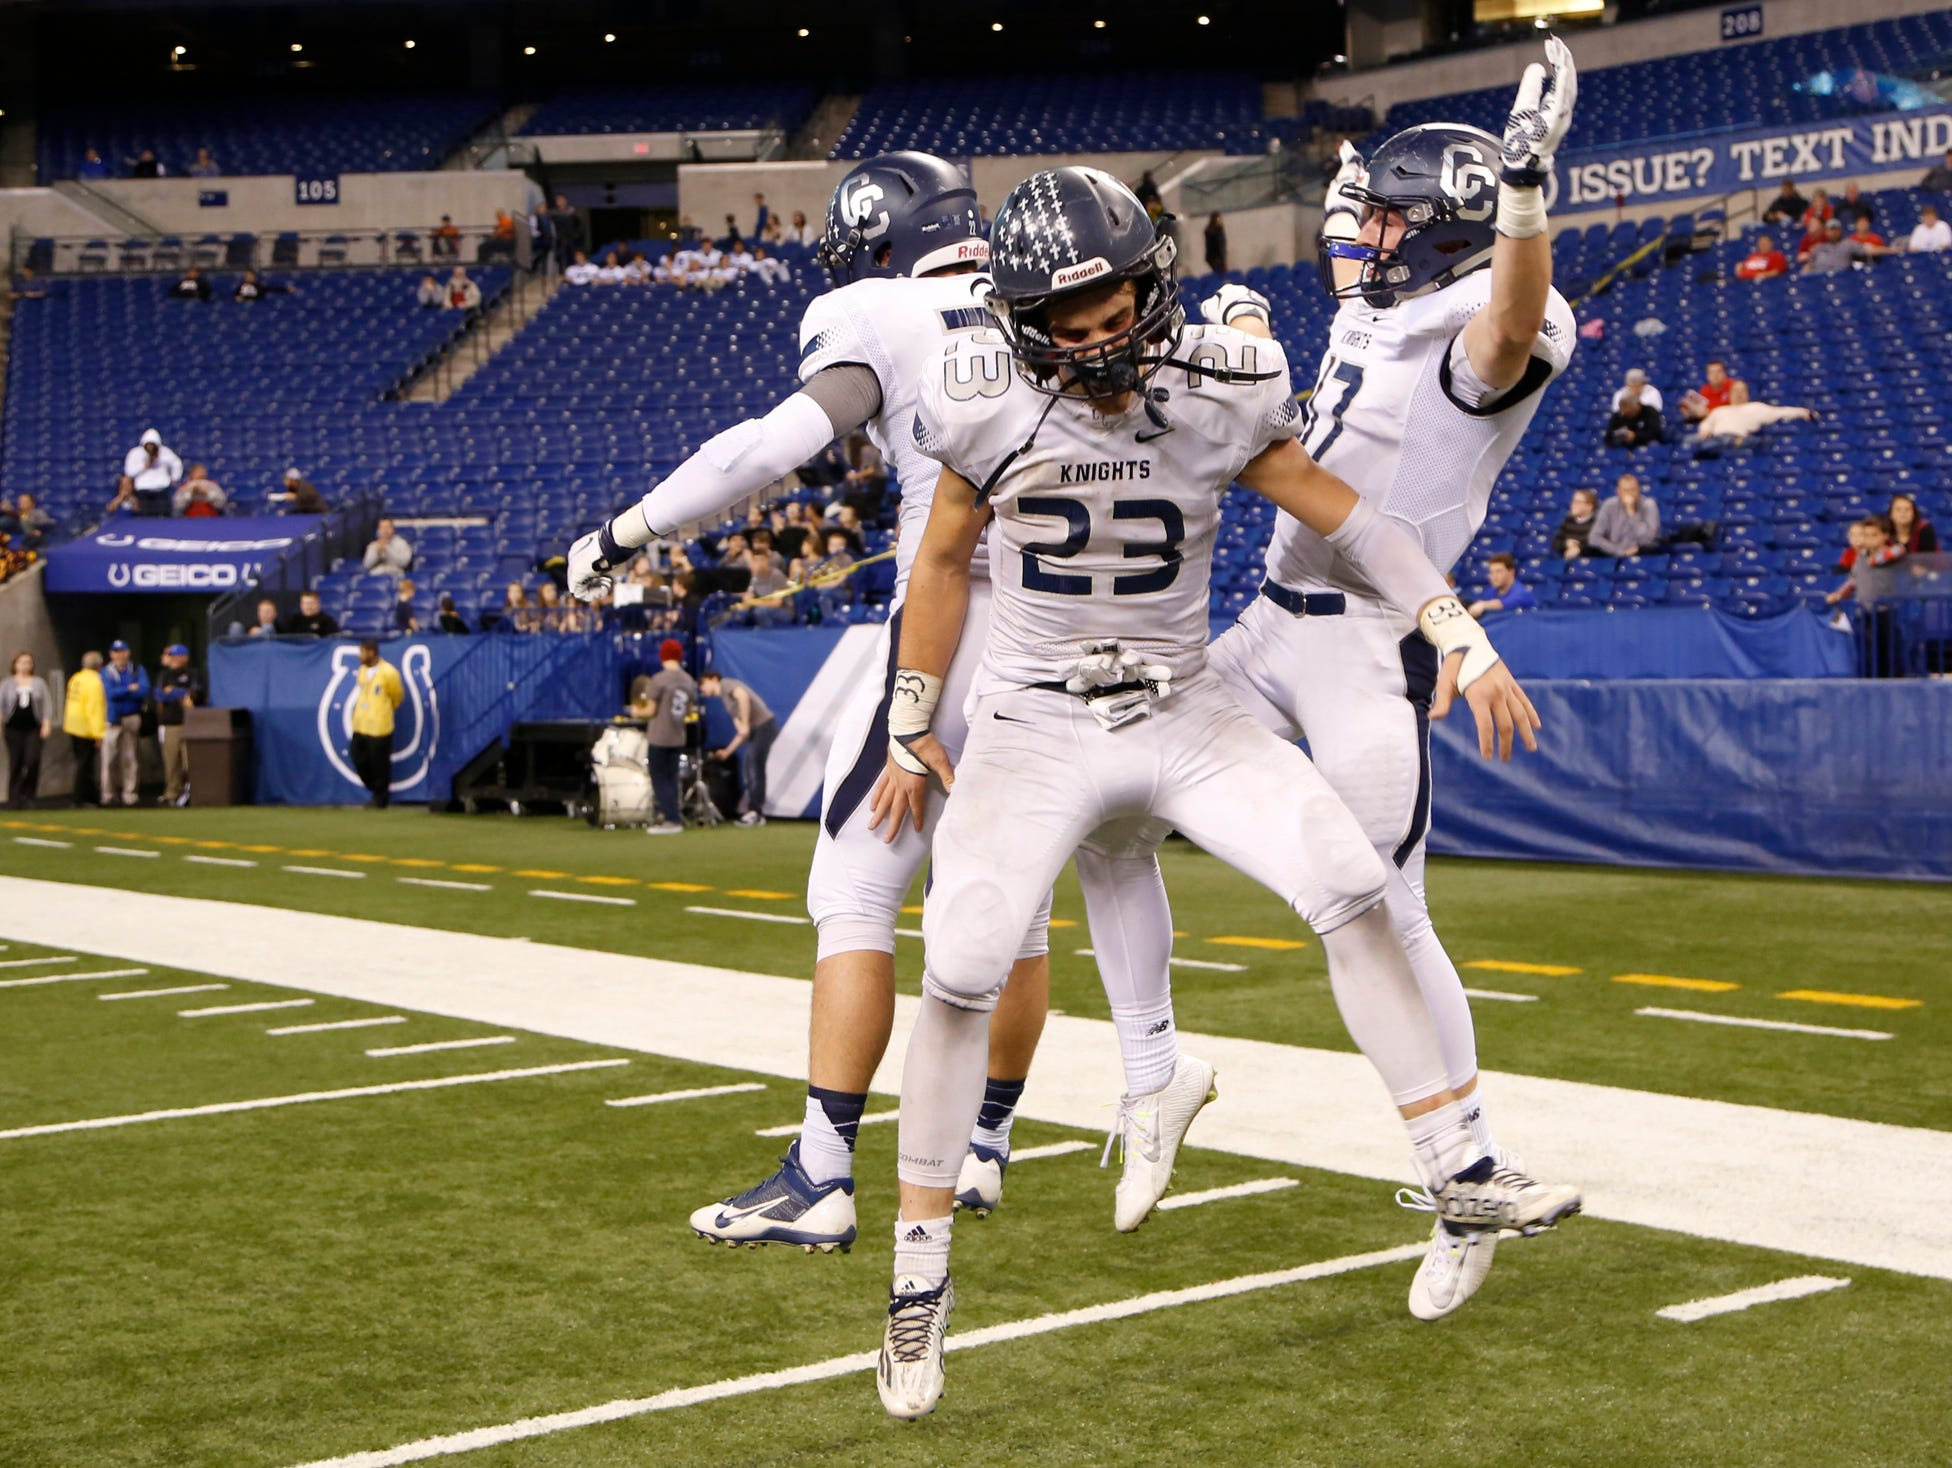 Jacob Page, Jackson Anthrop and Ben Metzinger celebrate afer Central Catholic defeated Linton-Stockton 34-7 in the Class A state finals Friday, November 27, 2015, at Lucas Oil Stadium in Indianapolis.